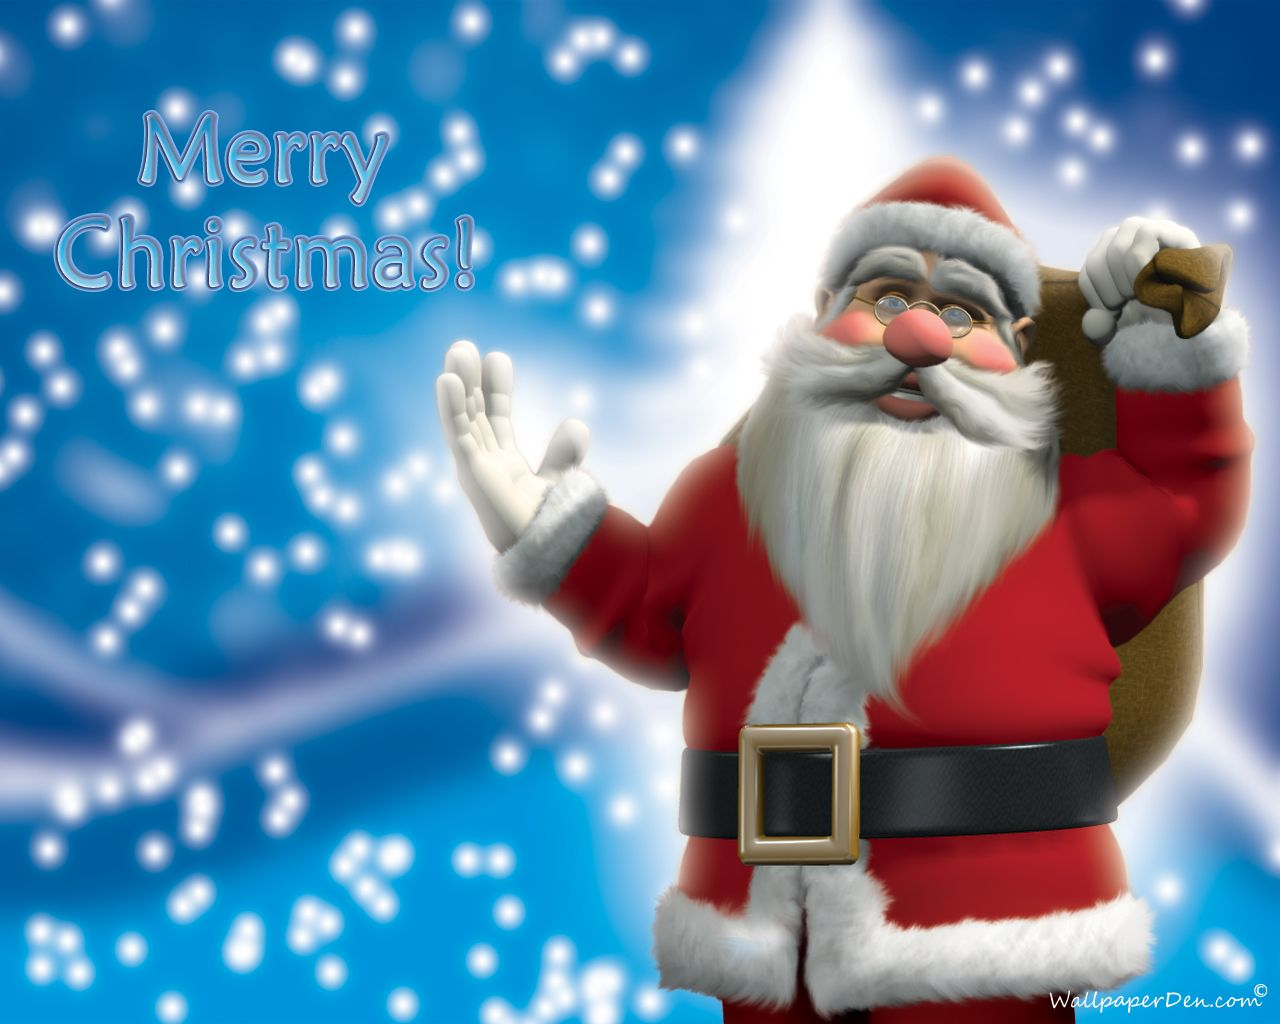 Wishing You A Merry Christmas Photos Of Santa Claus